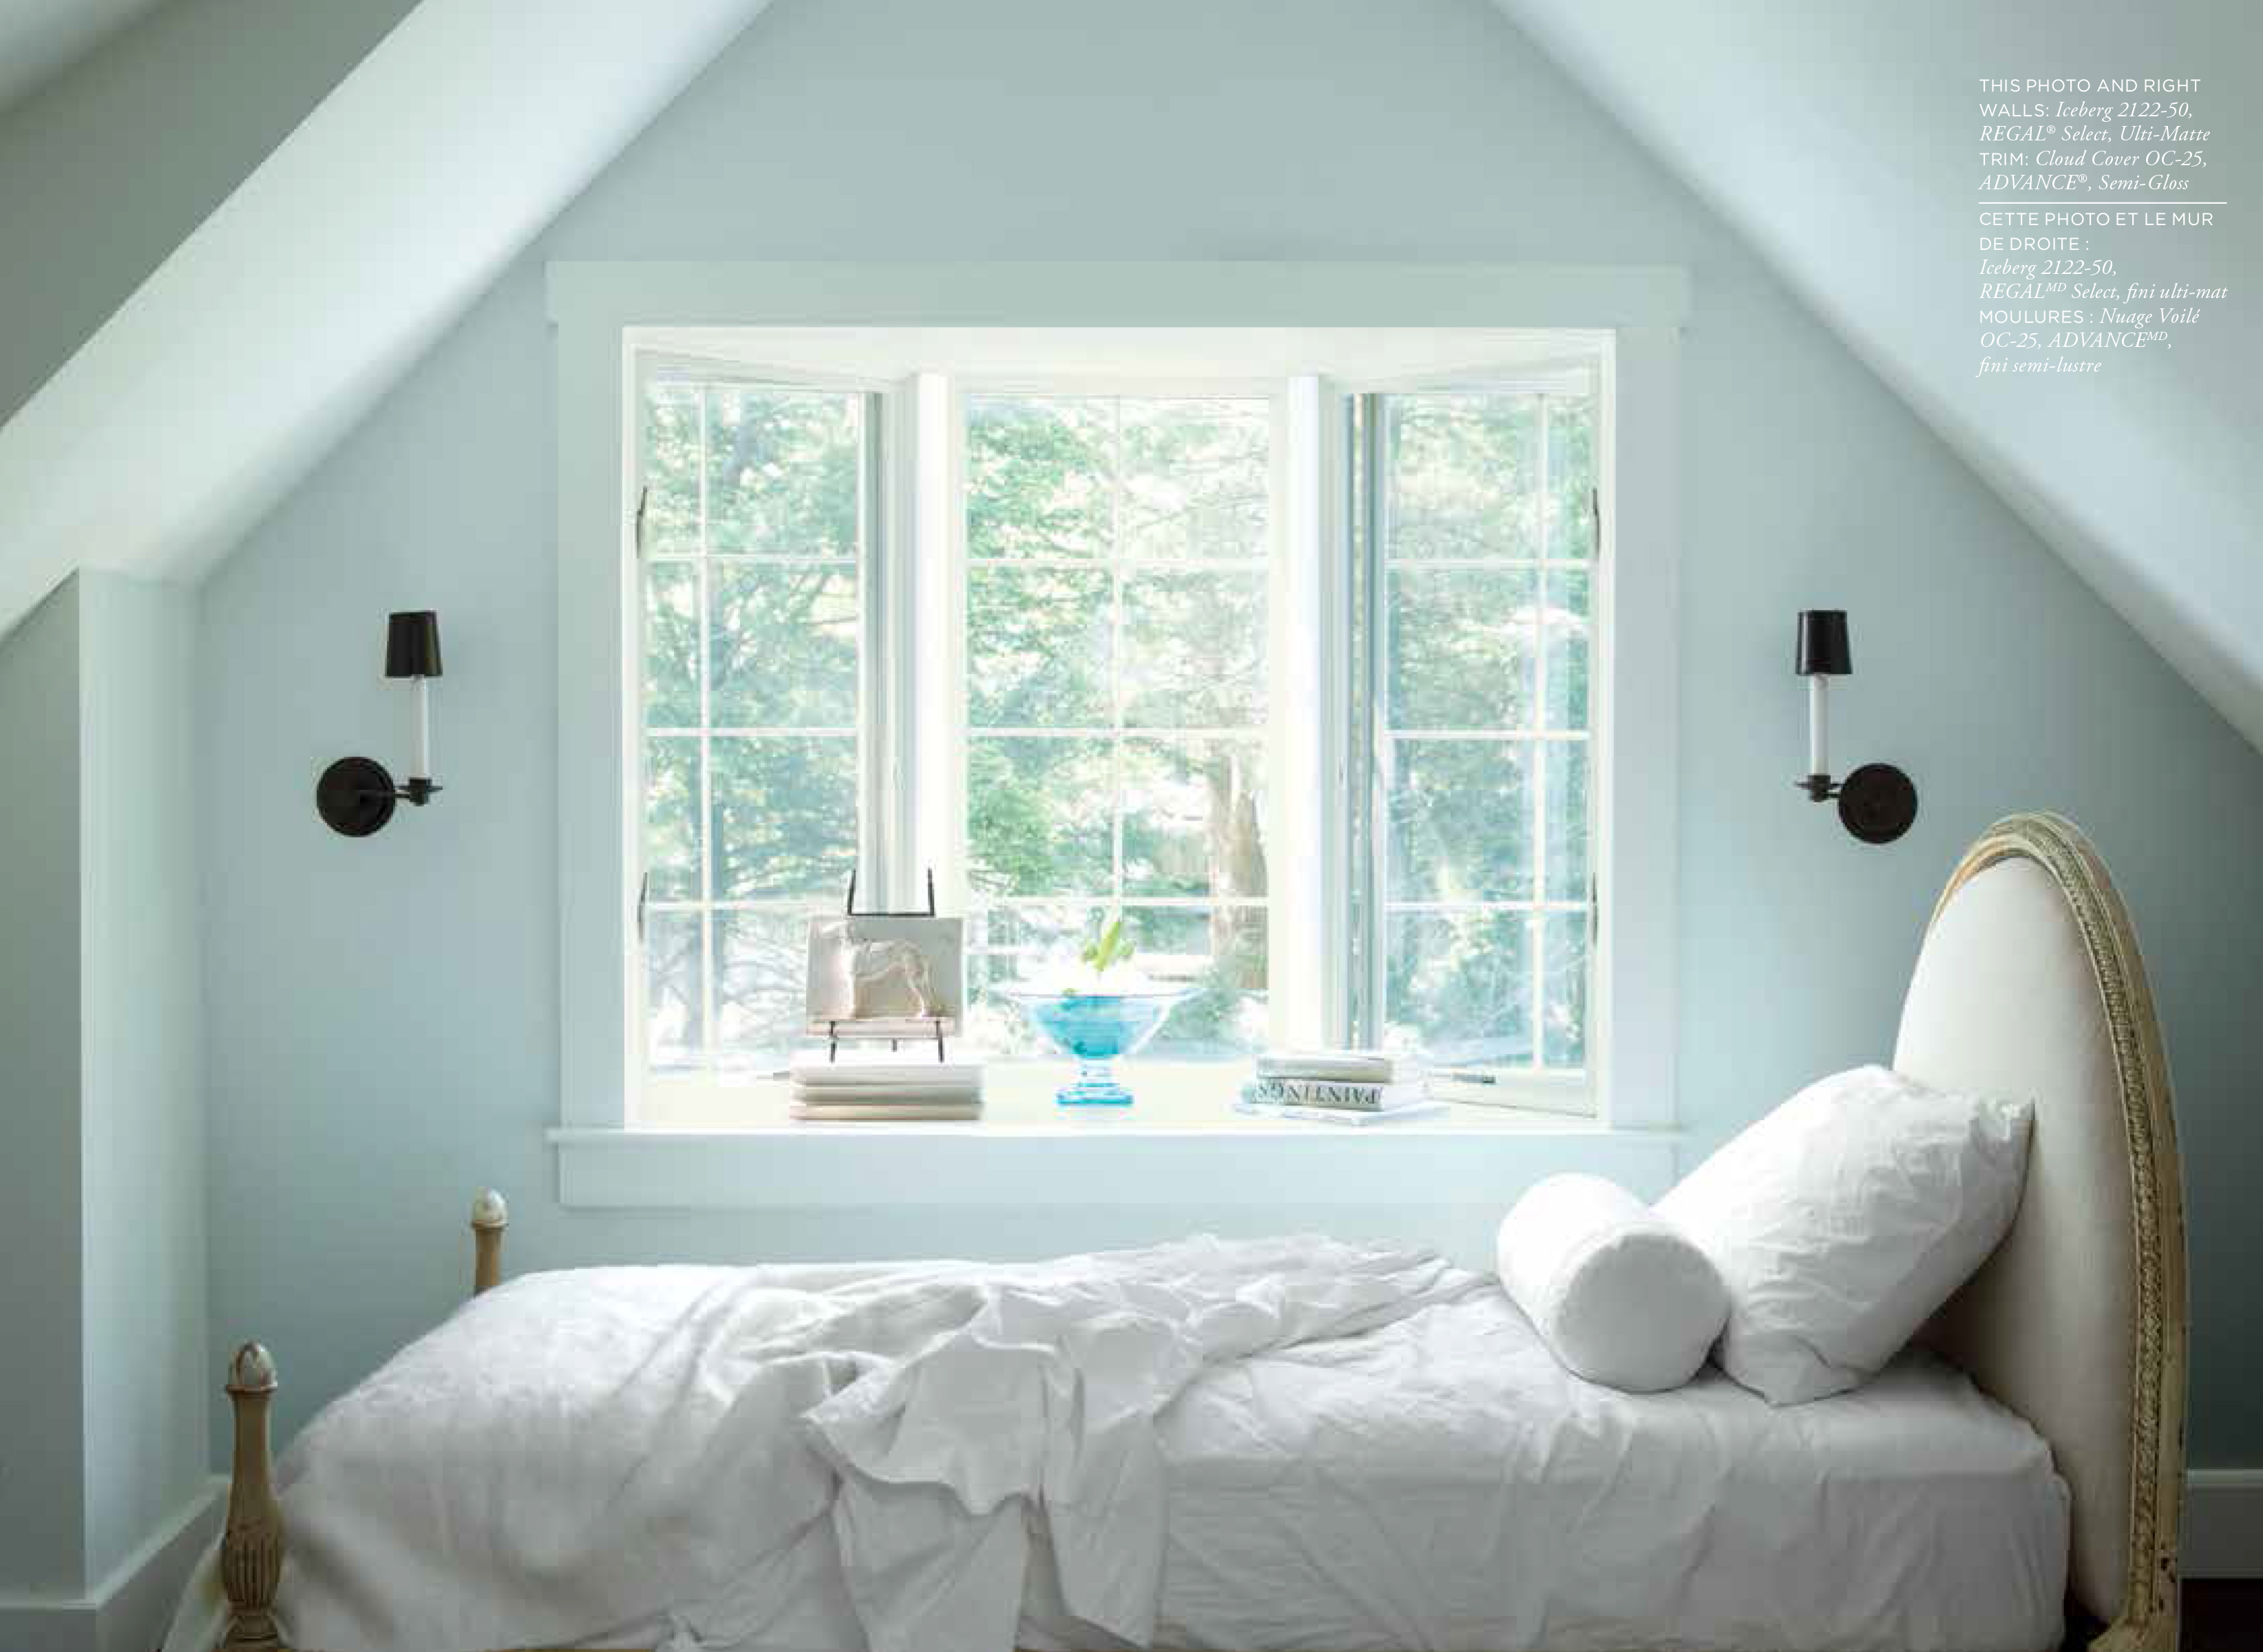 House in addition 2017 Color Year 5 Paint Colors New Year besides Interior Design Forecasting besides Benjamin Moore Furniture furthermore Interior Design With Gold Walls. on 2017 paint trends benjamin moore